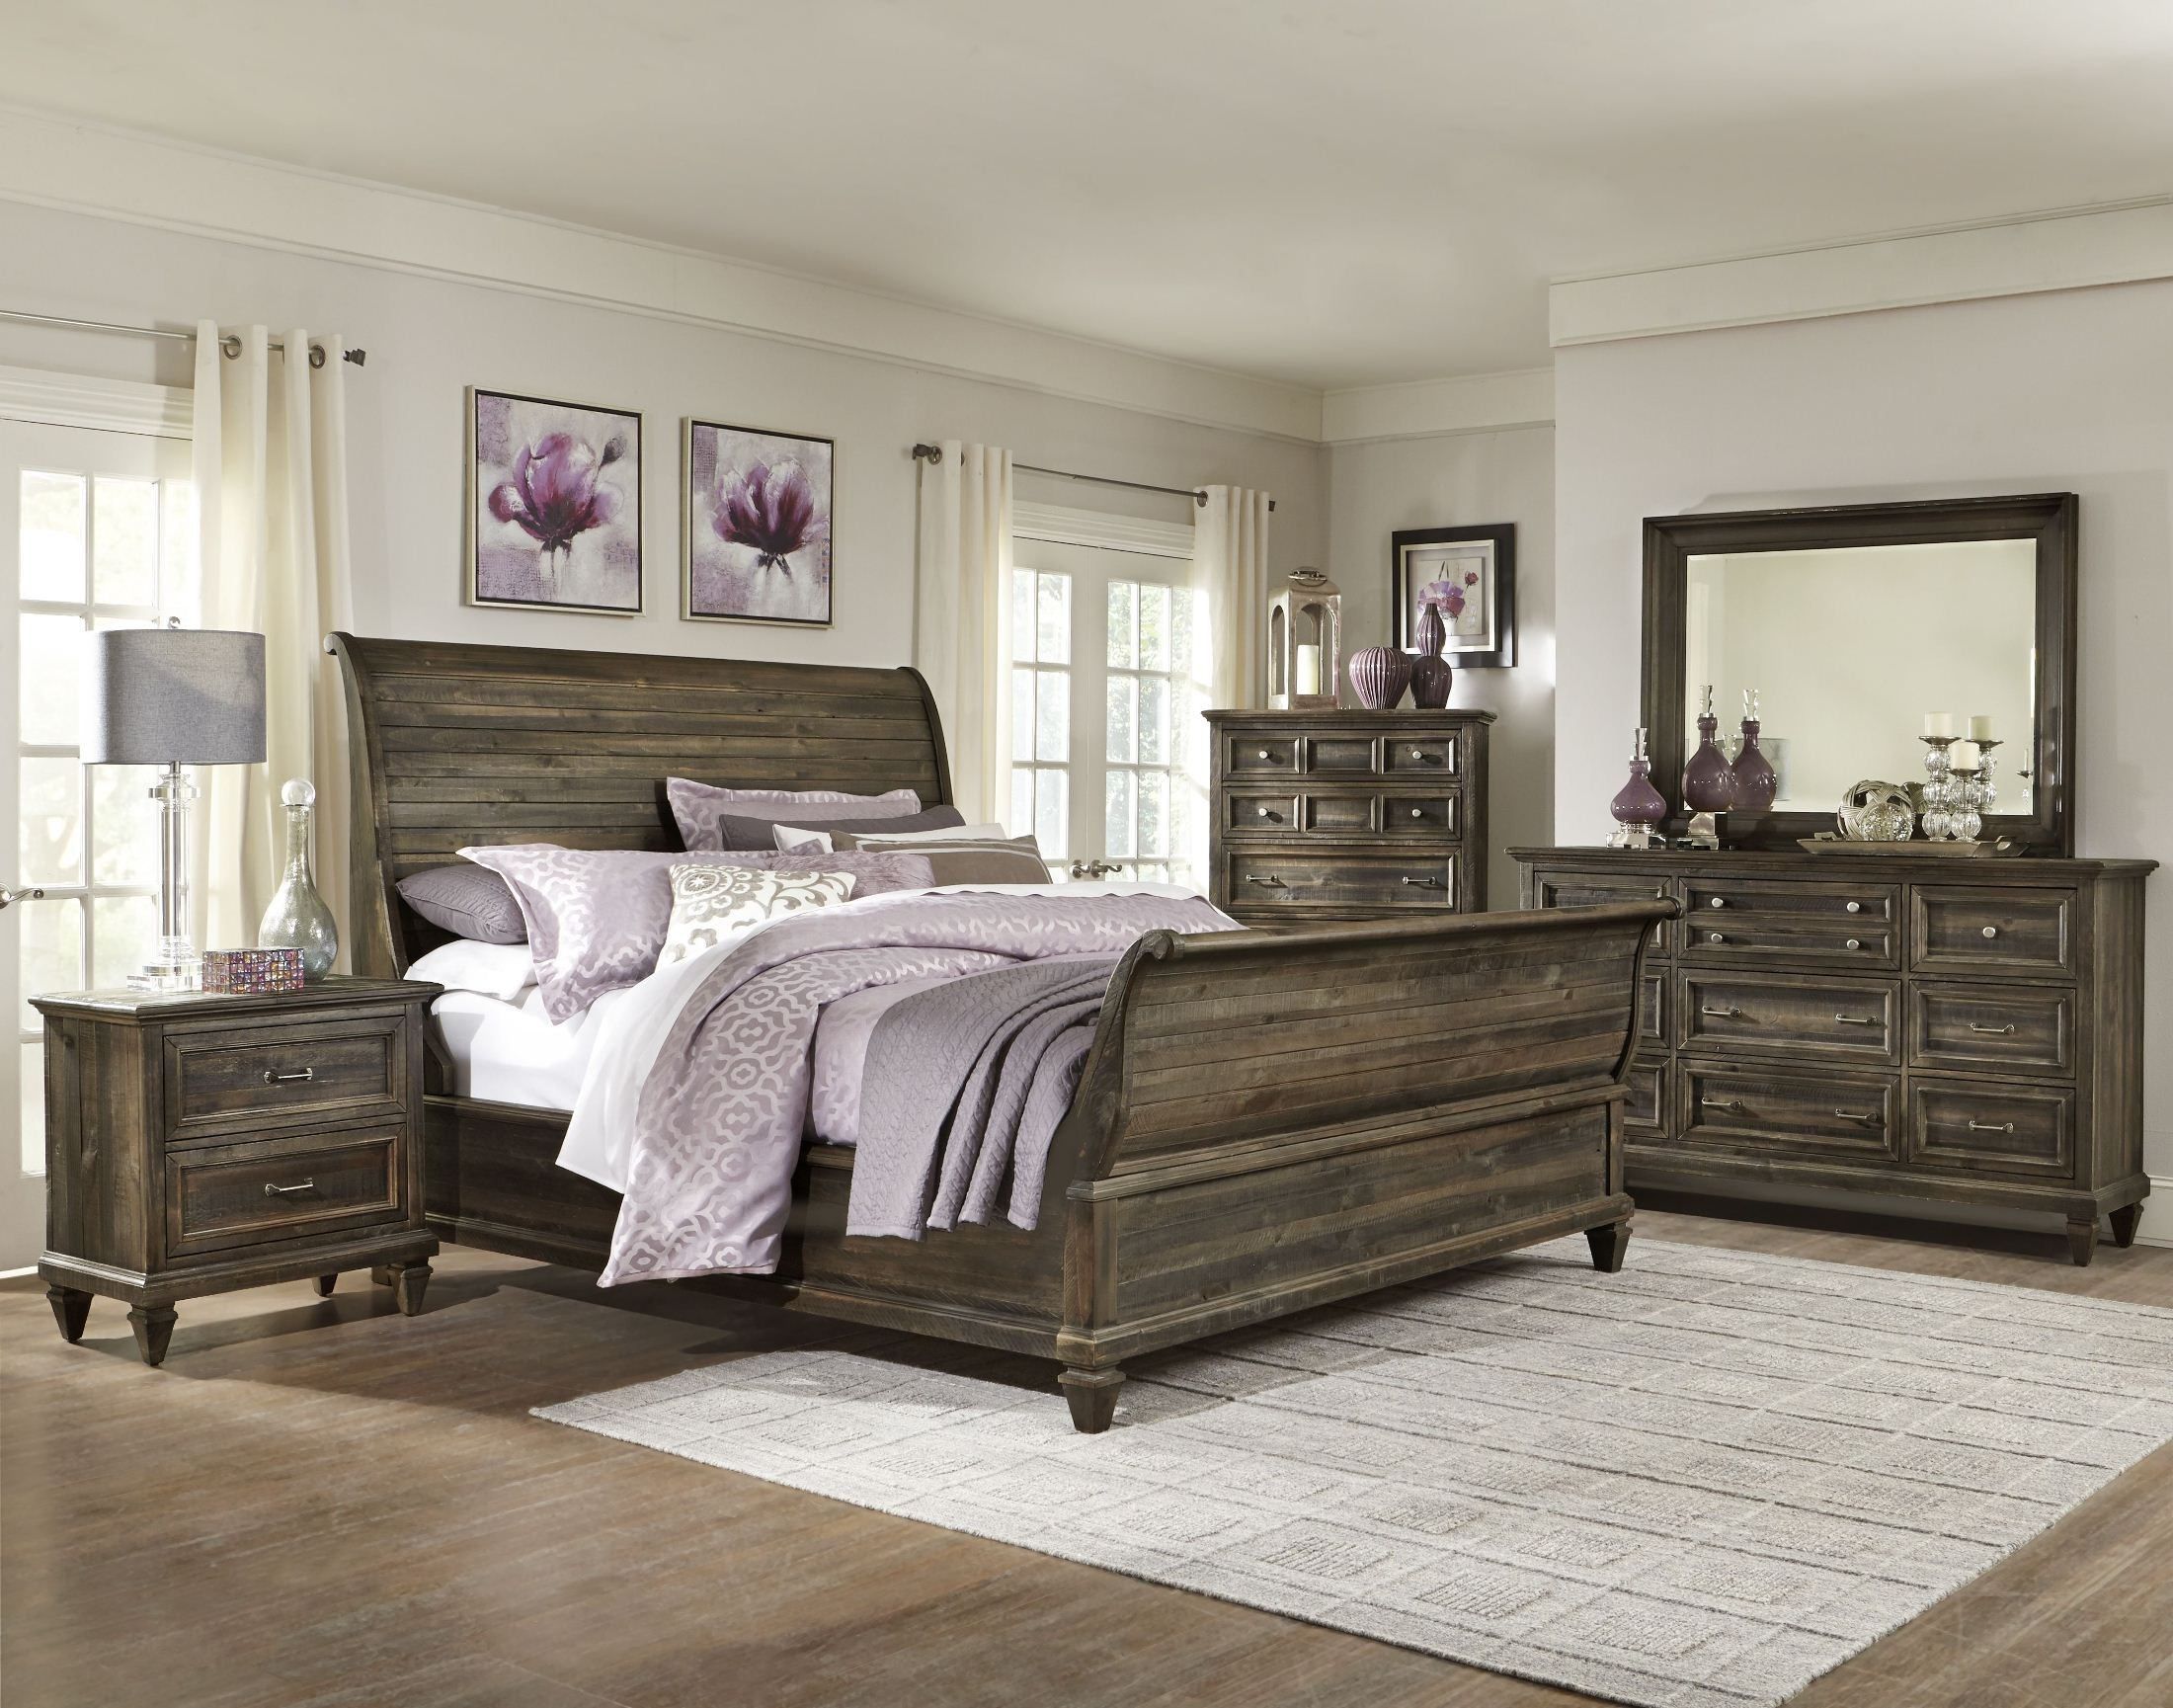 sleigh bedroom set calistoga sleigh bedroom set from magnussen home b2590 13170